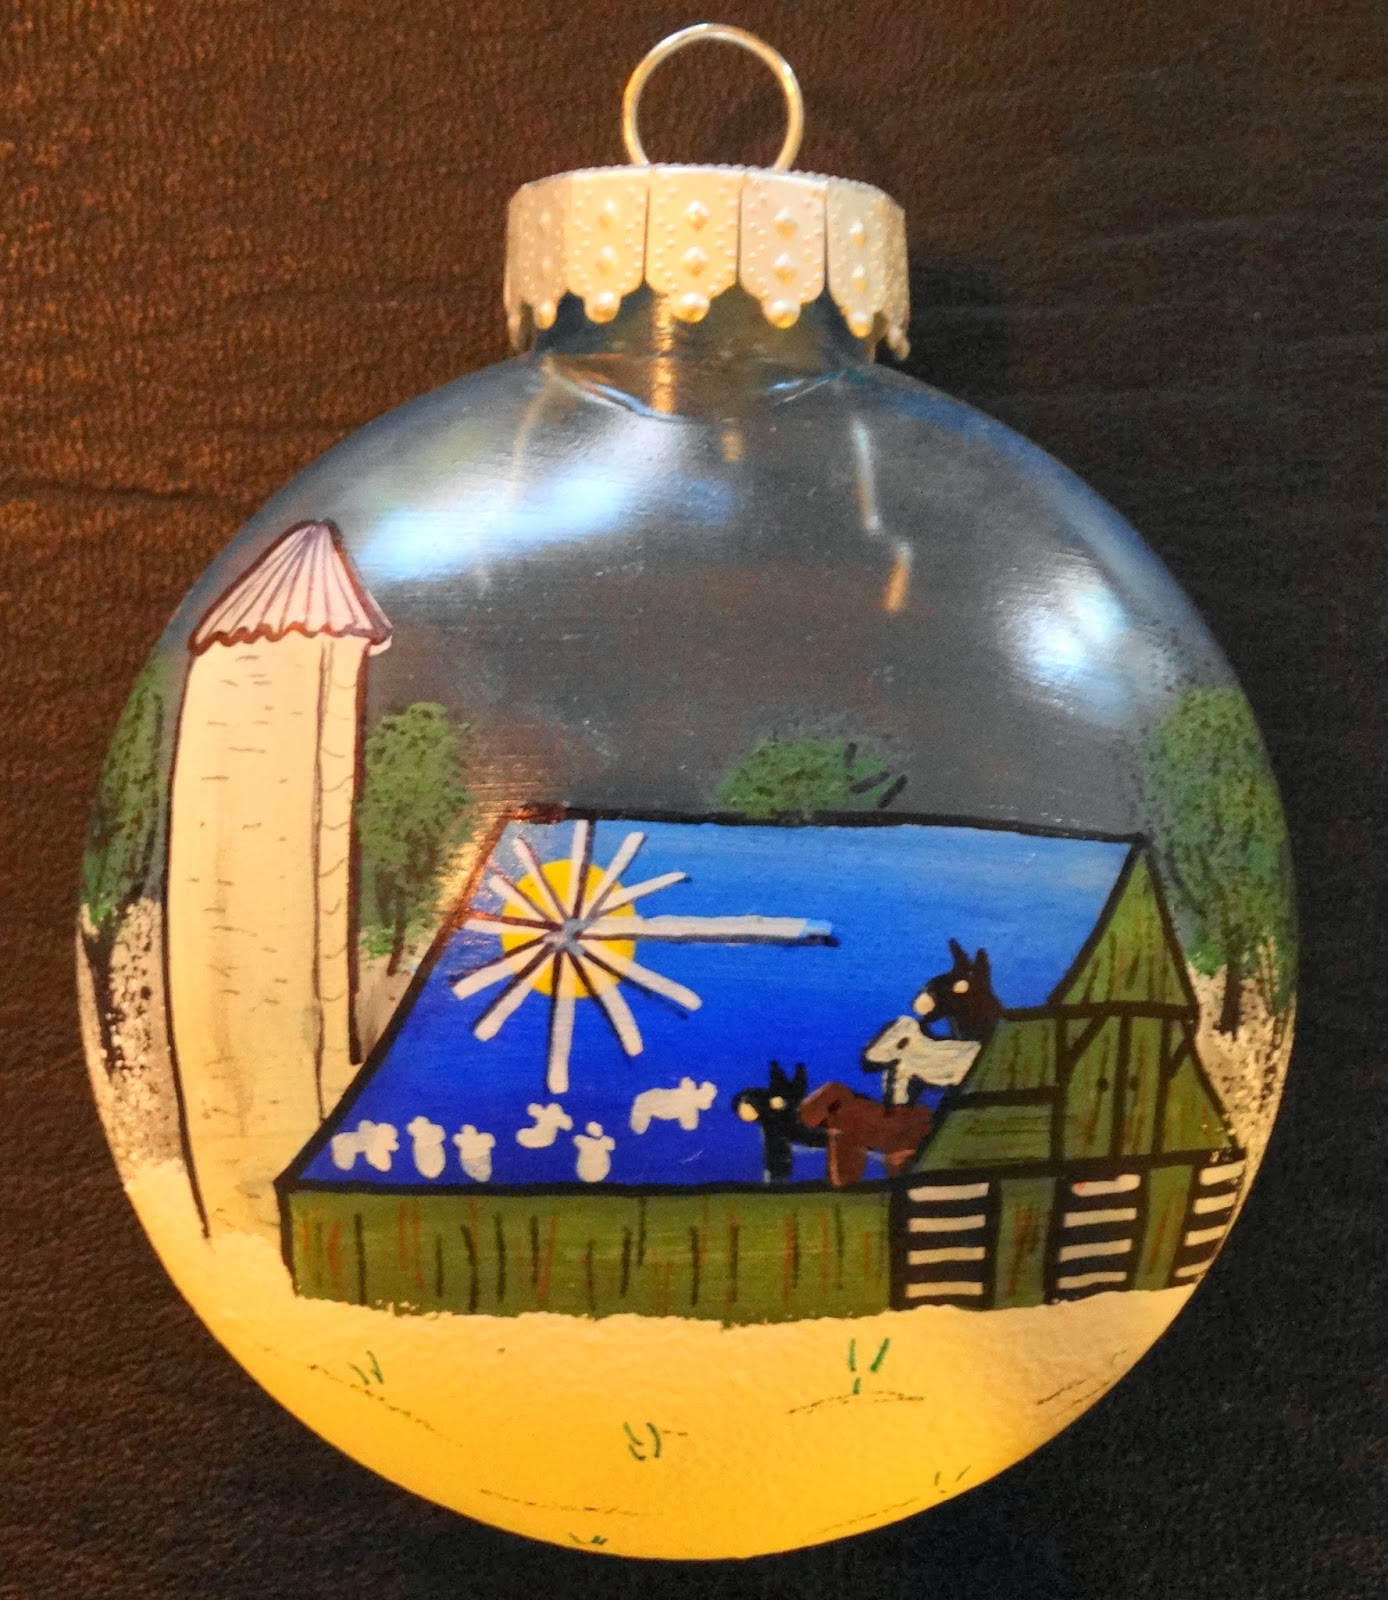 Unique christmas ornaments for sale to support college